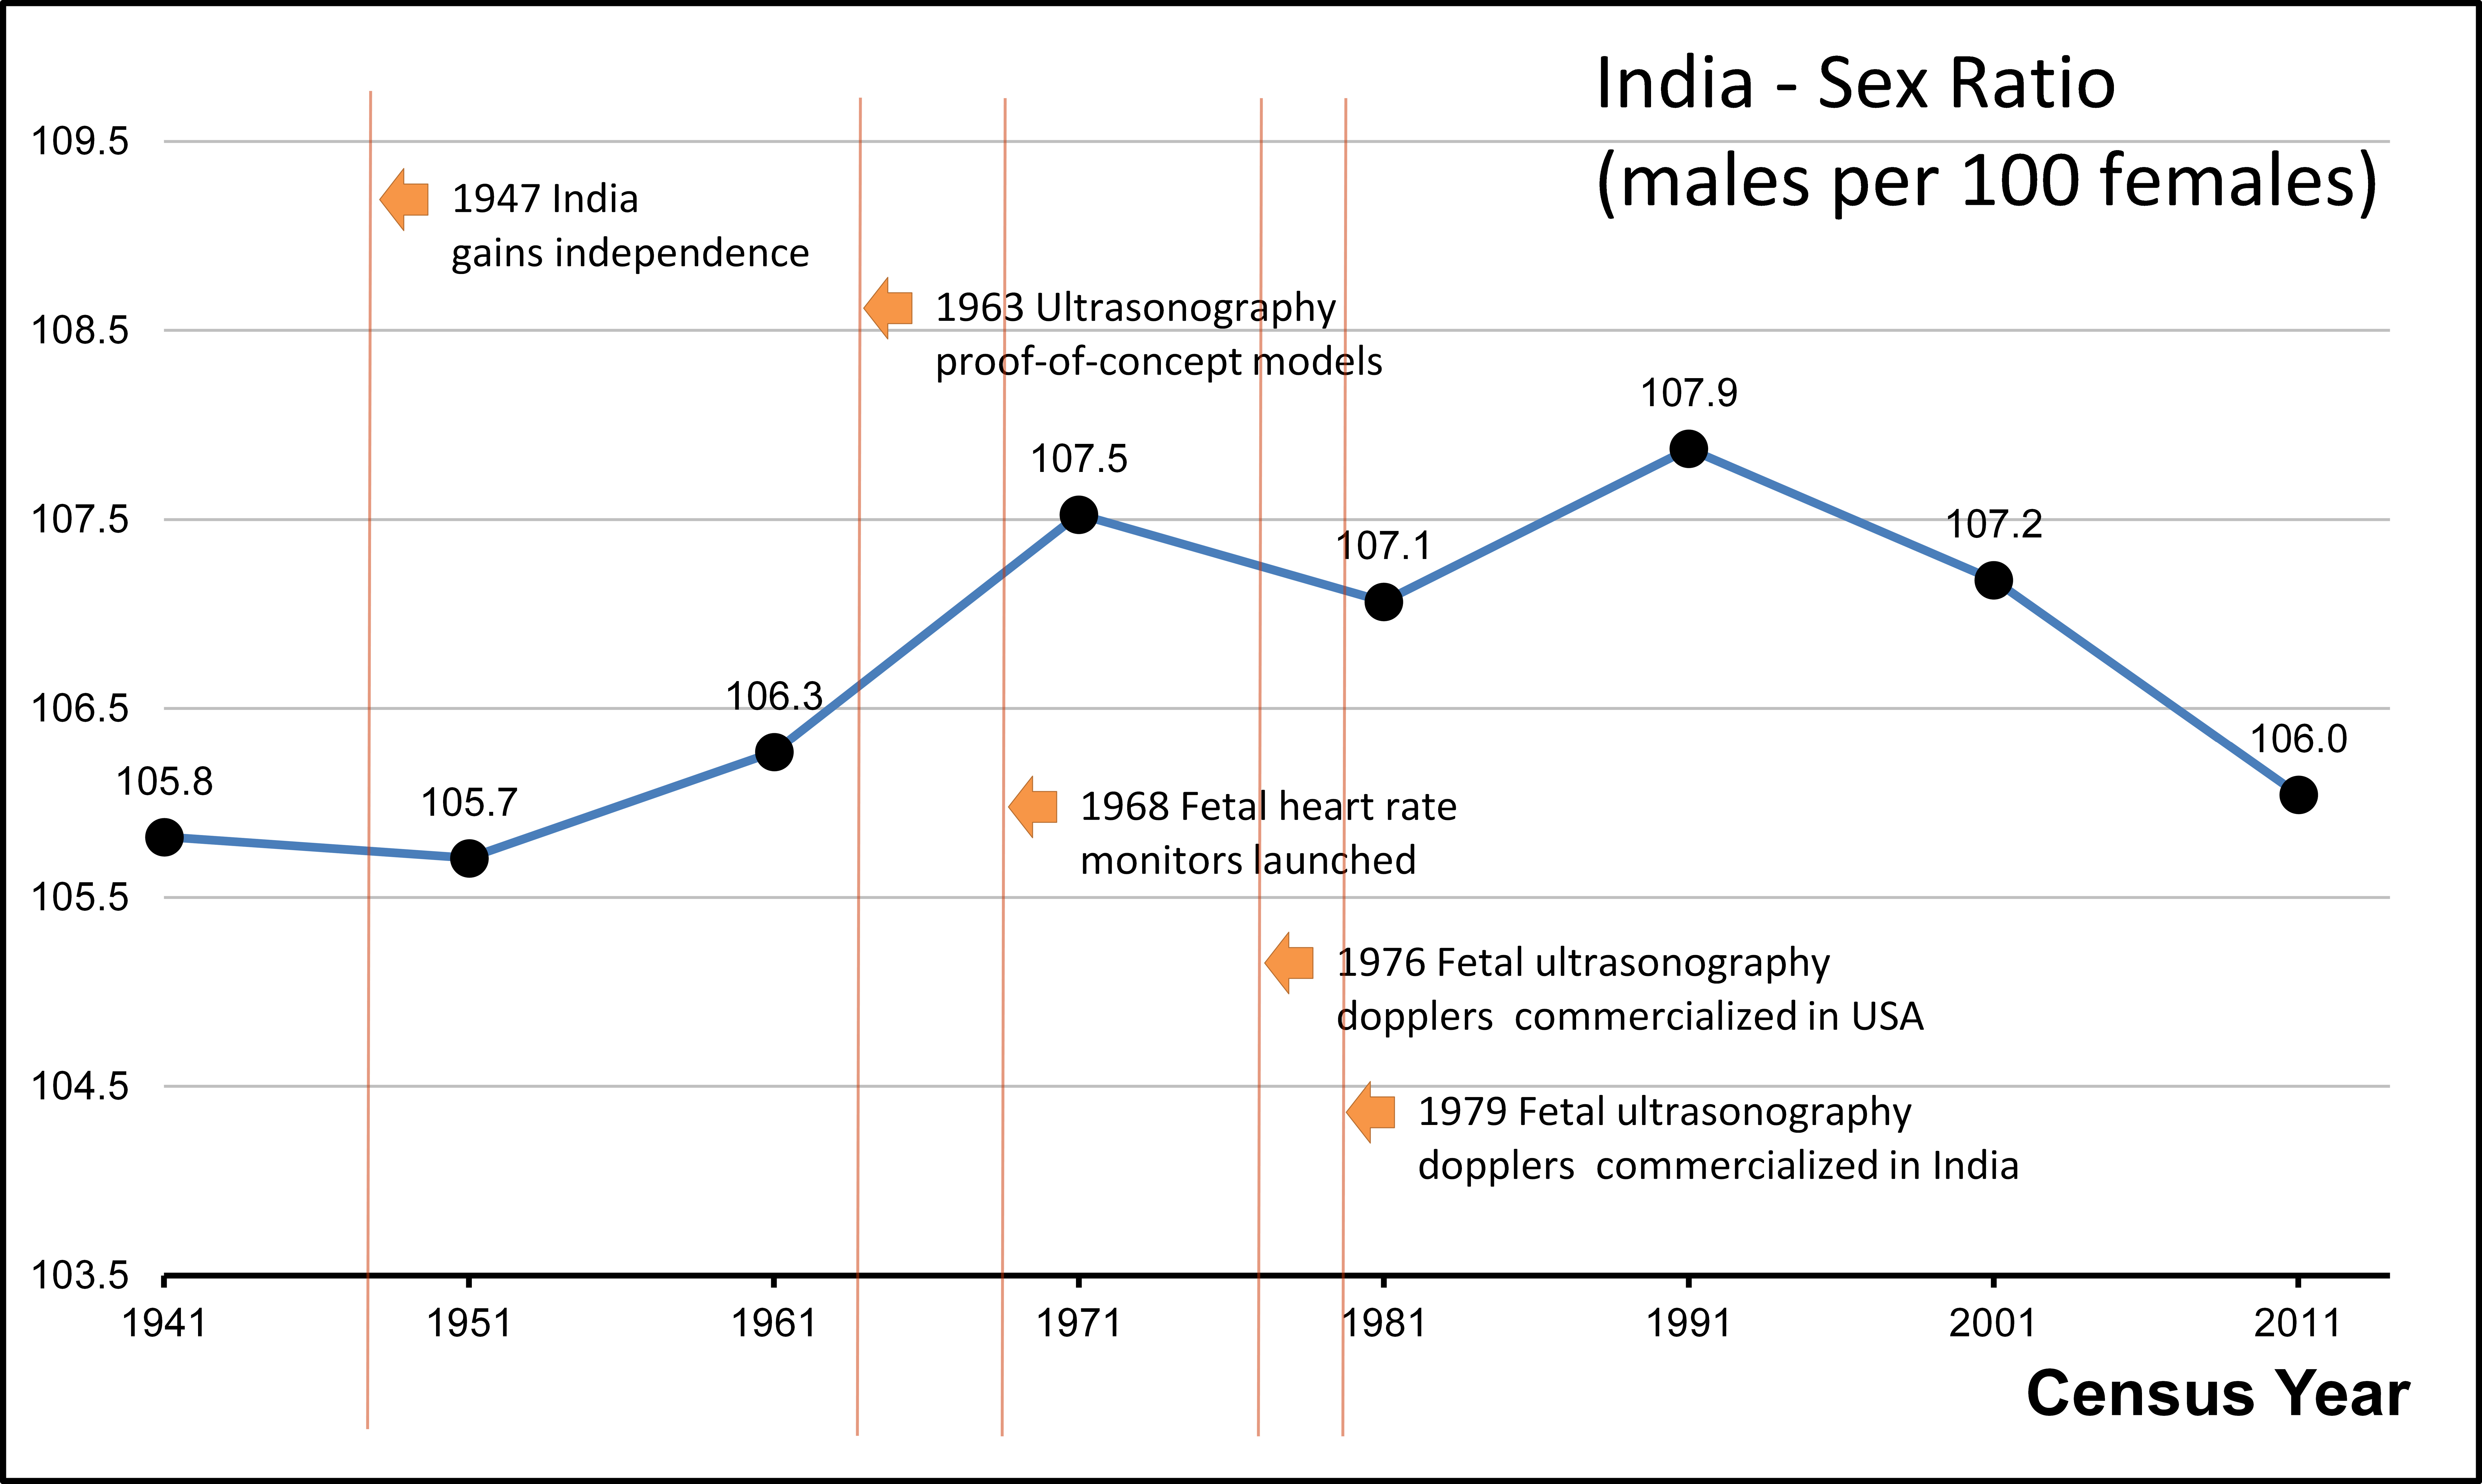 File:India Male to Female Sex Ratio 1941 1951 1961 1981 1991 2001 2011.png - Wikimedia Commons